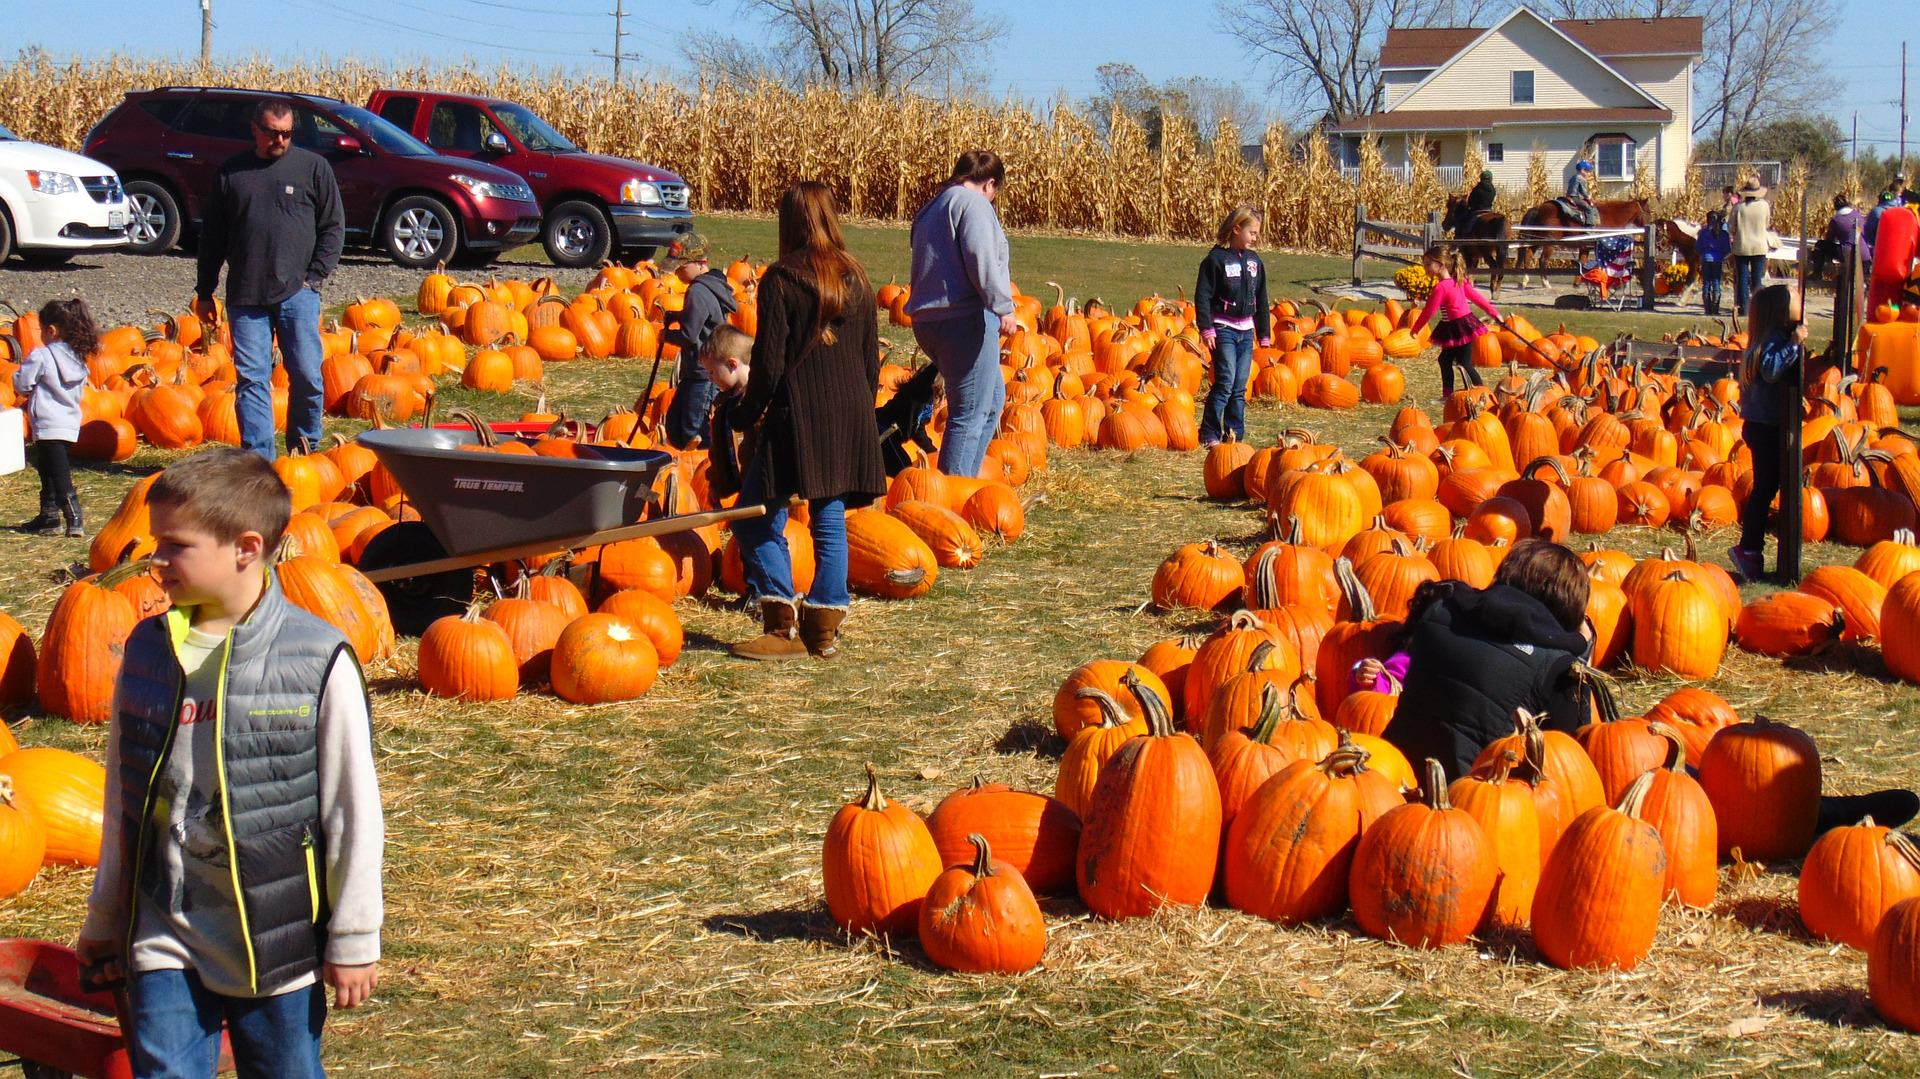 An image of a pumpkin field with people picking pumpkins.